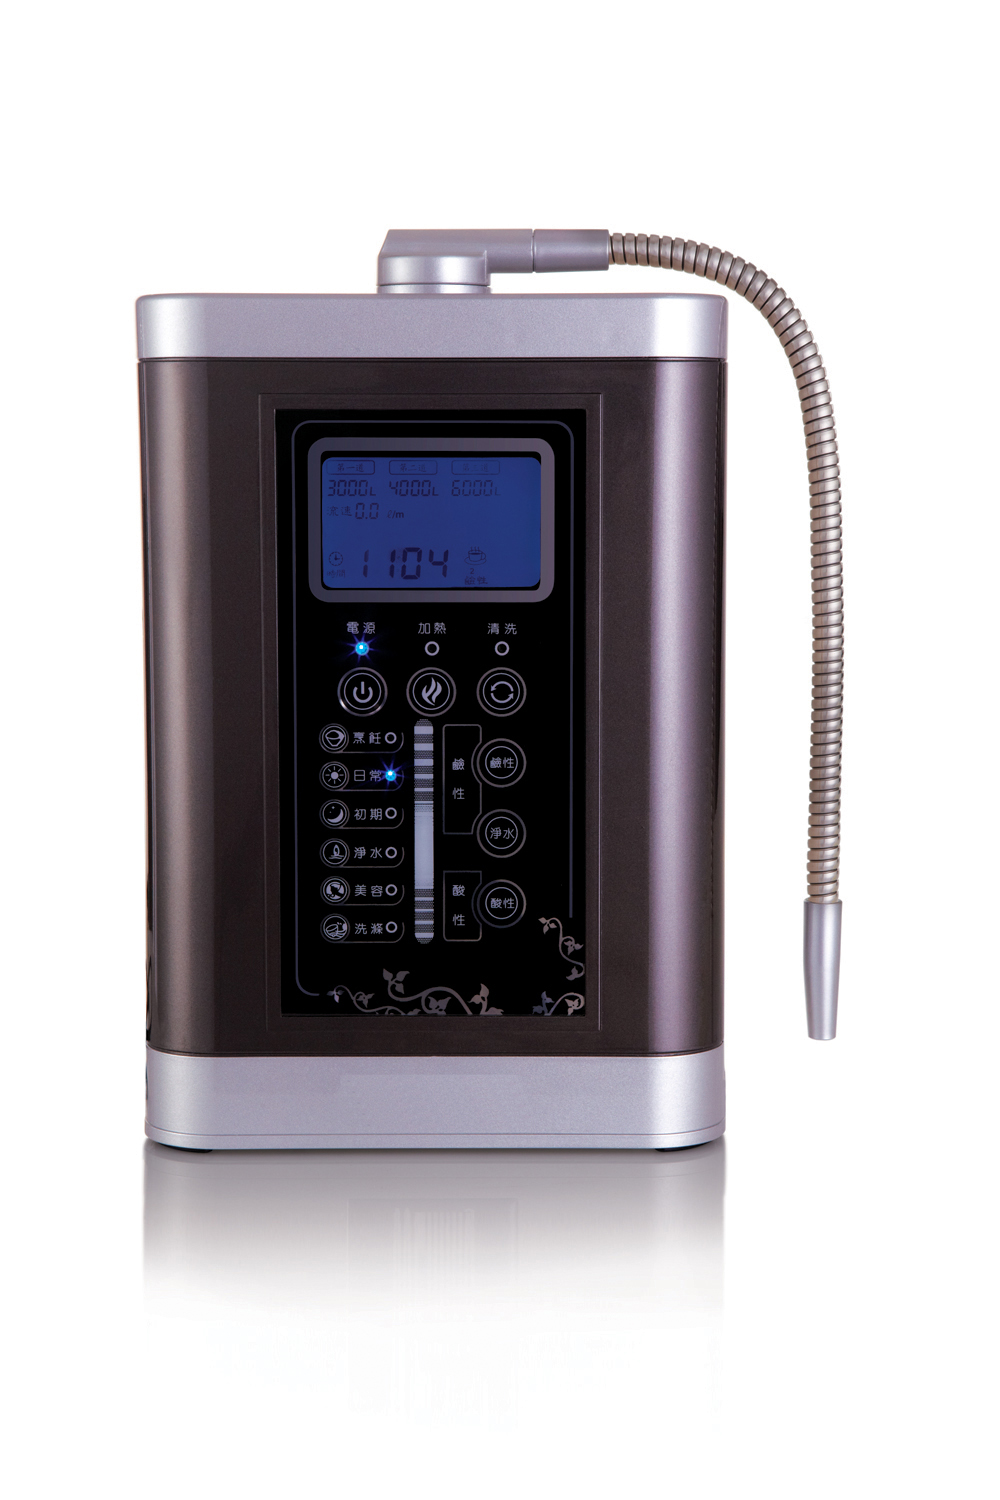 alkaline water ionizer machine multifunctional water ionizer JM-919B regulate body pH balance water ionizer alkaline water ionizer for wholesale and retail one unit with 3 stage pre filters